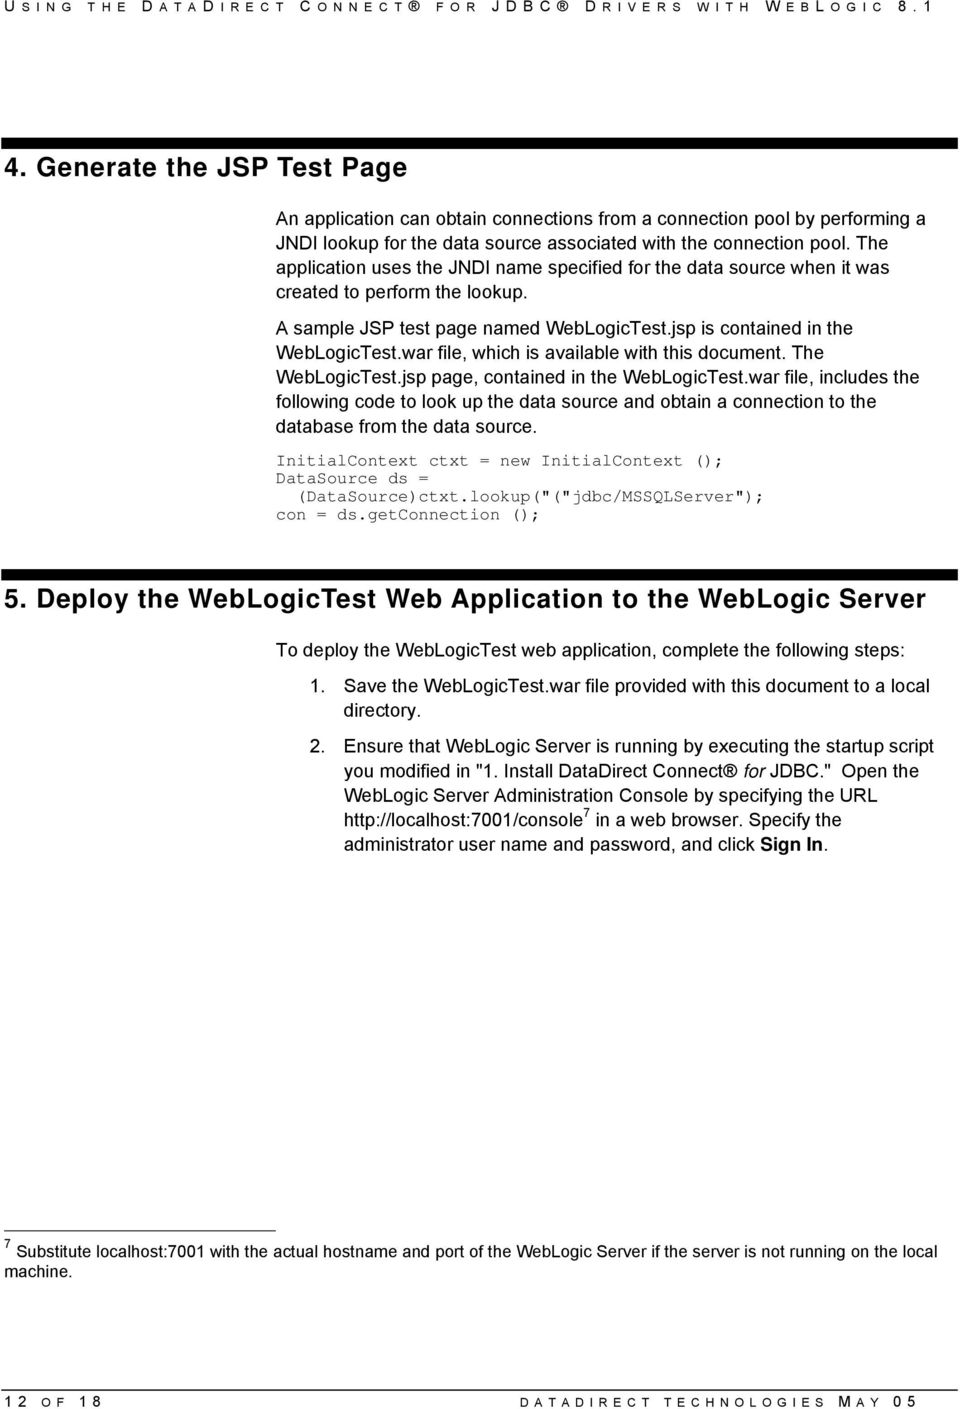 The application uses the JNDI name specified for the data source when it was created to perform the lookup. A sample JSP test page named WebLogicTest.jsp is contained in the WebLogicTest.